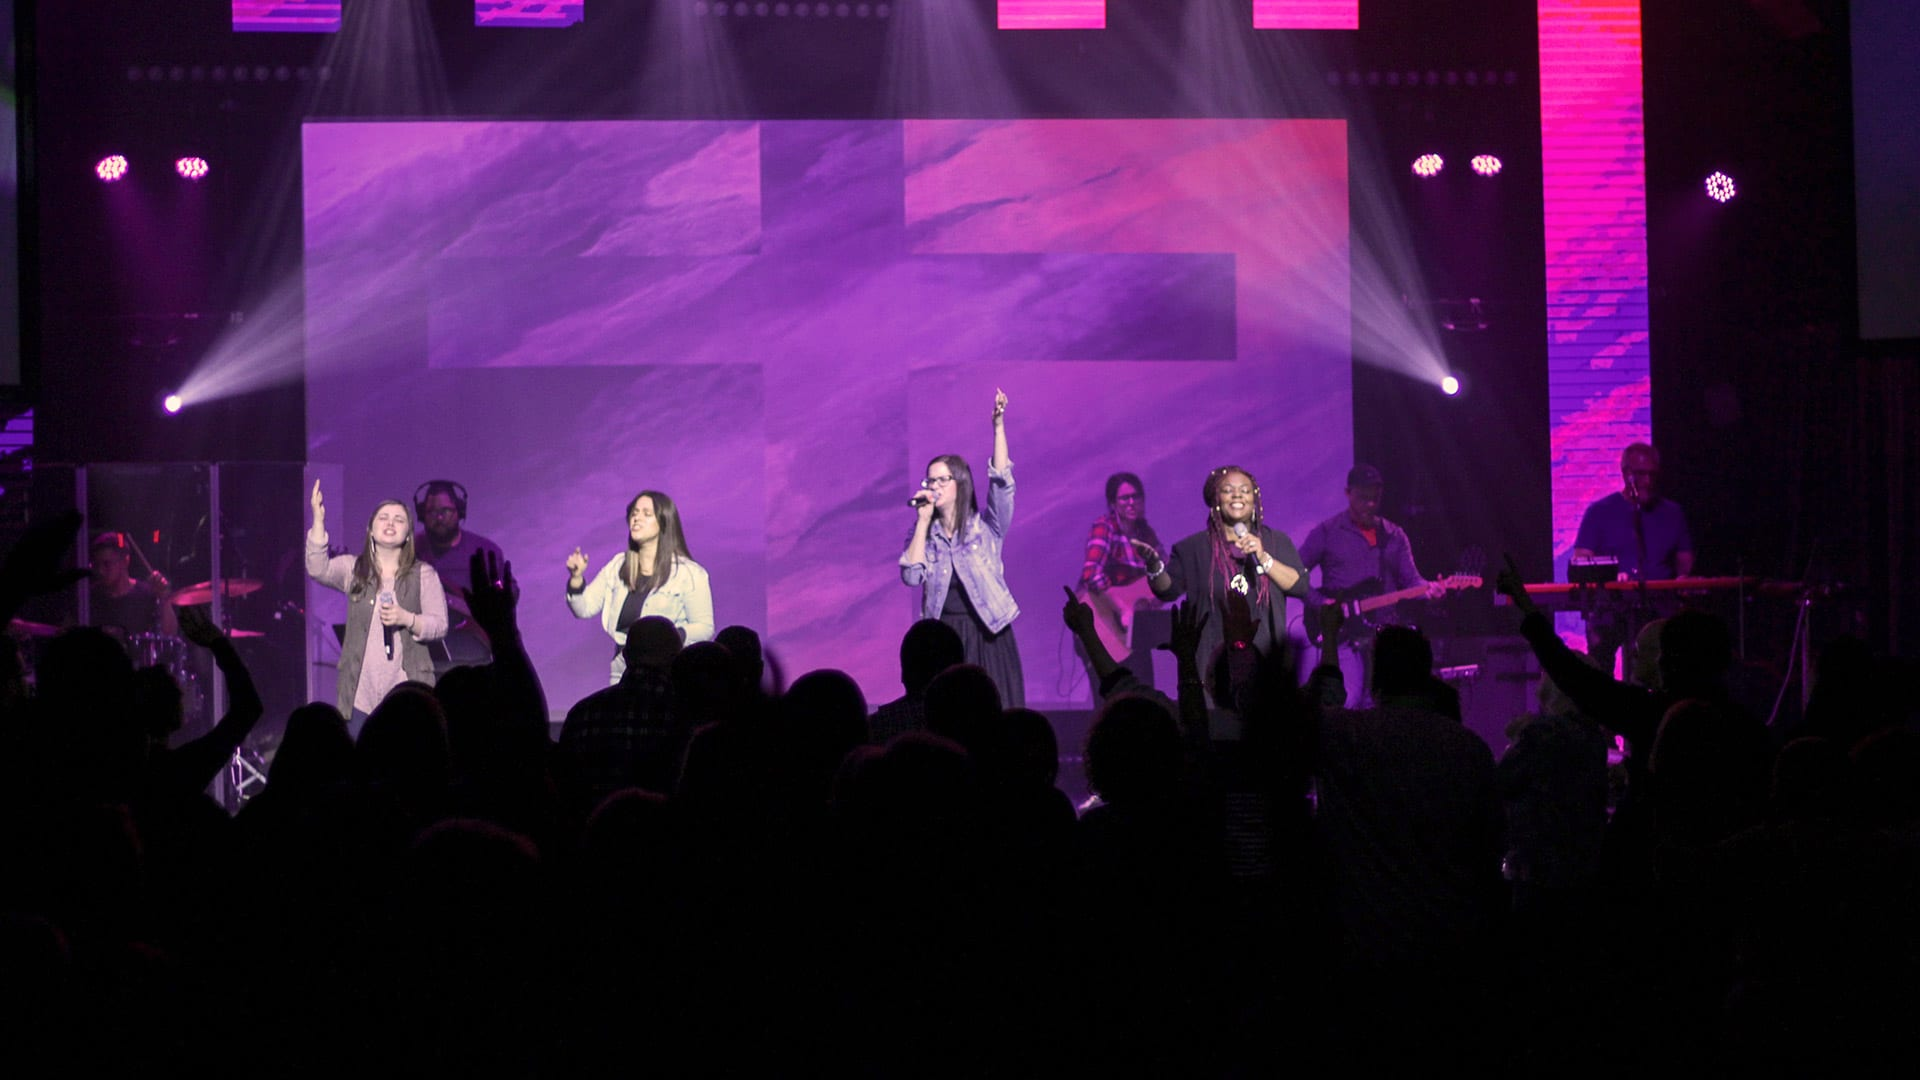 5 Easy Ideas To Make Worship Special This Easter At Your Church